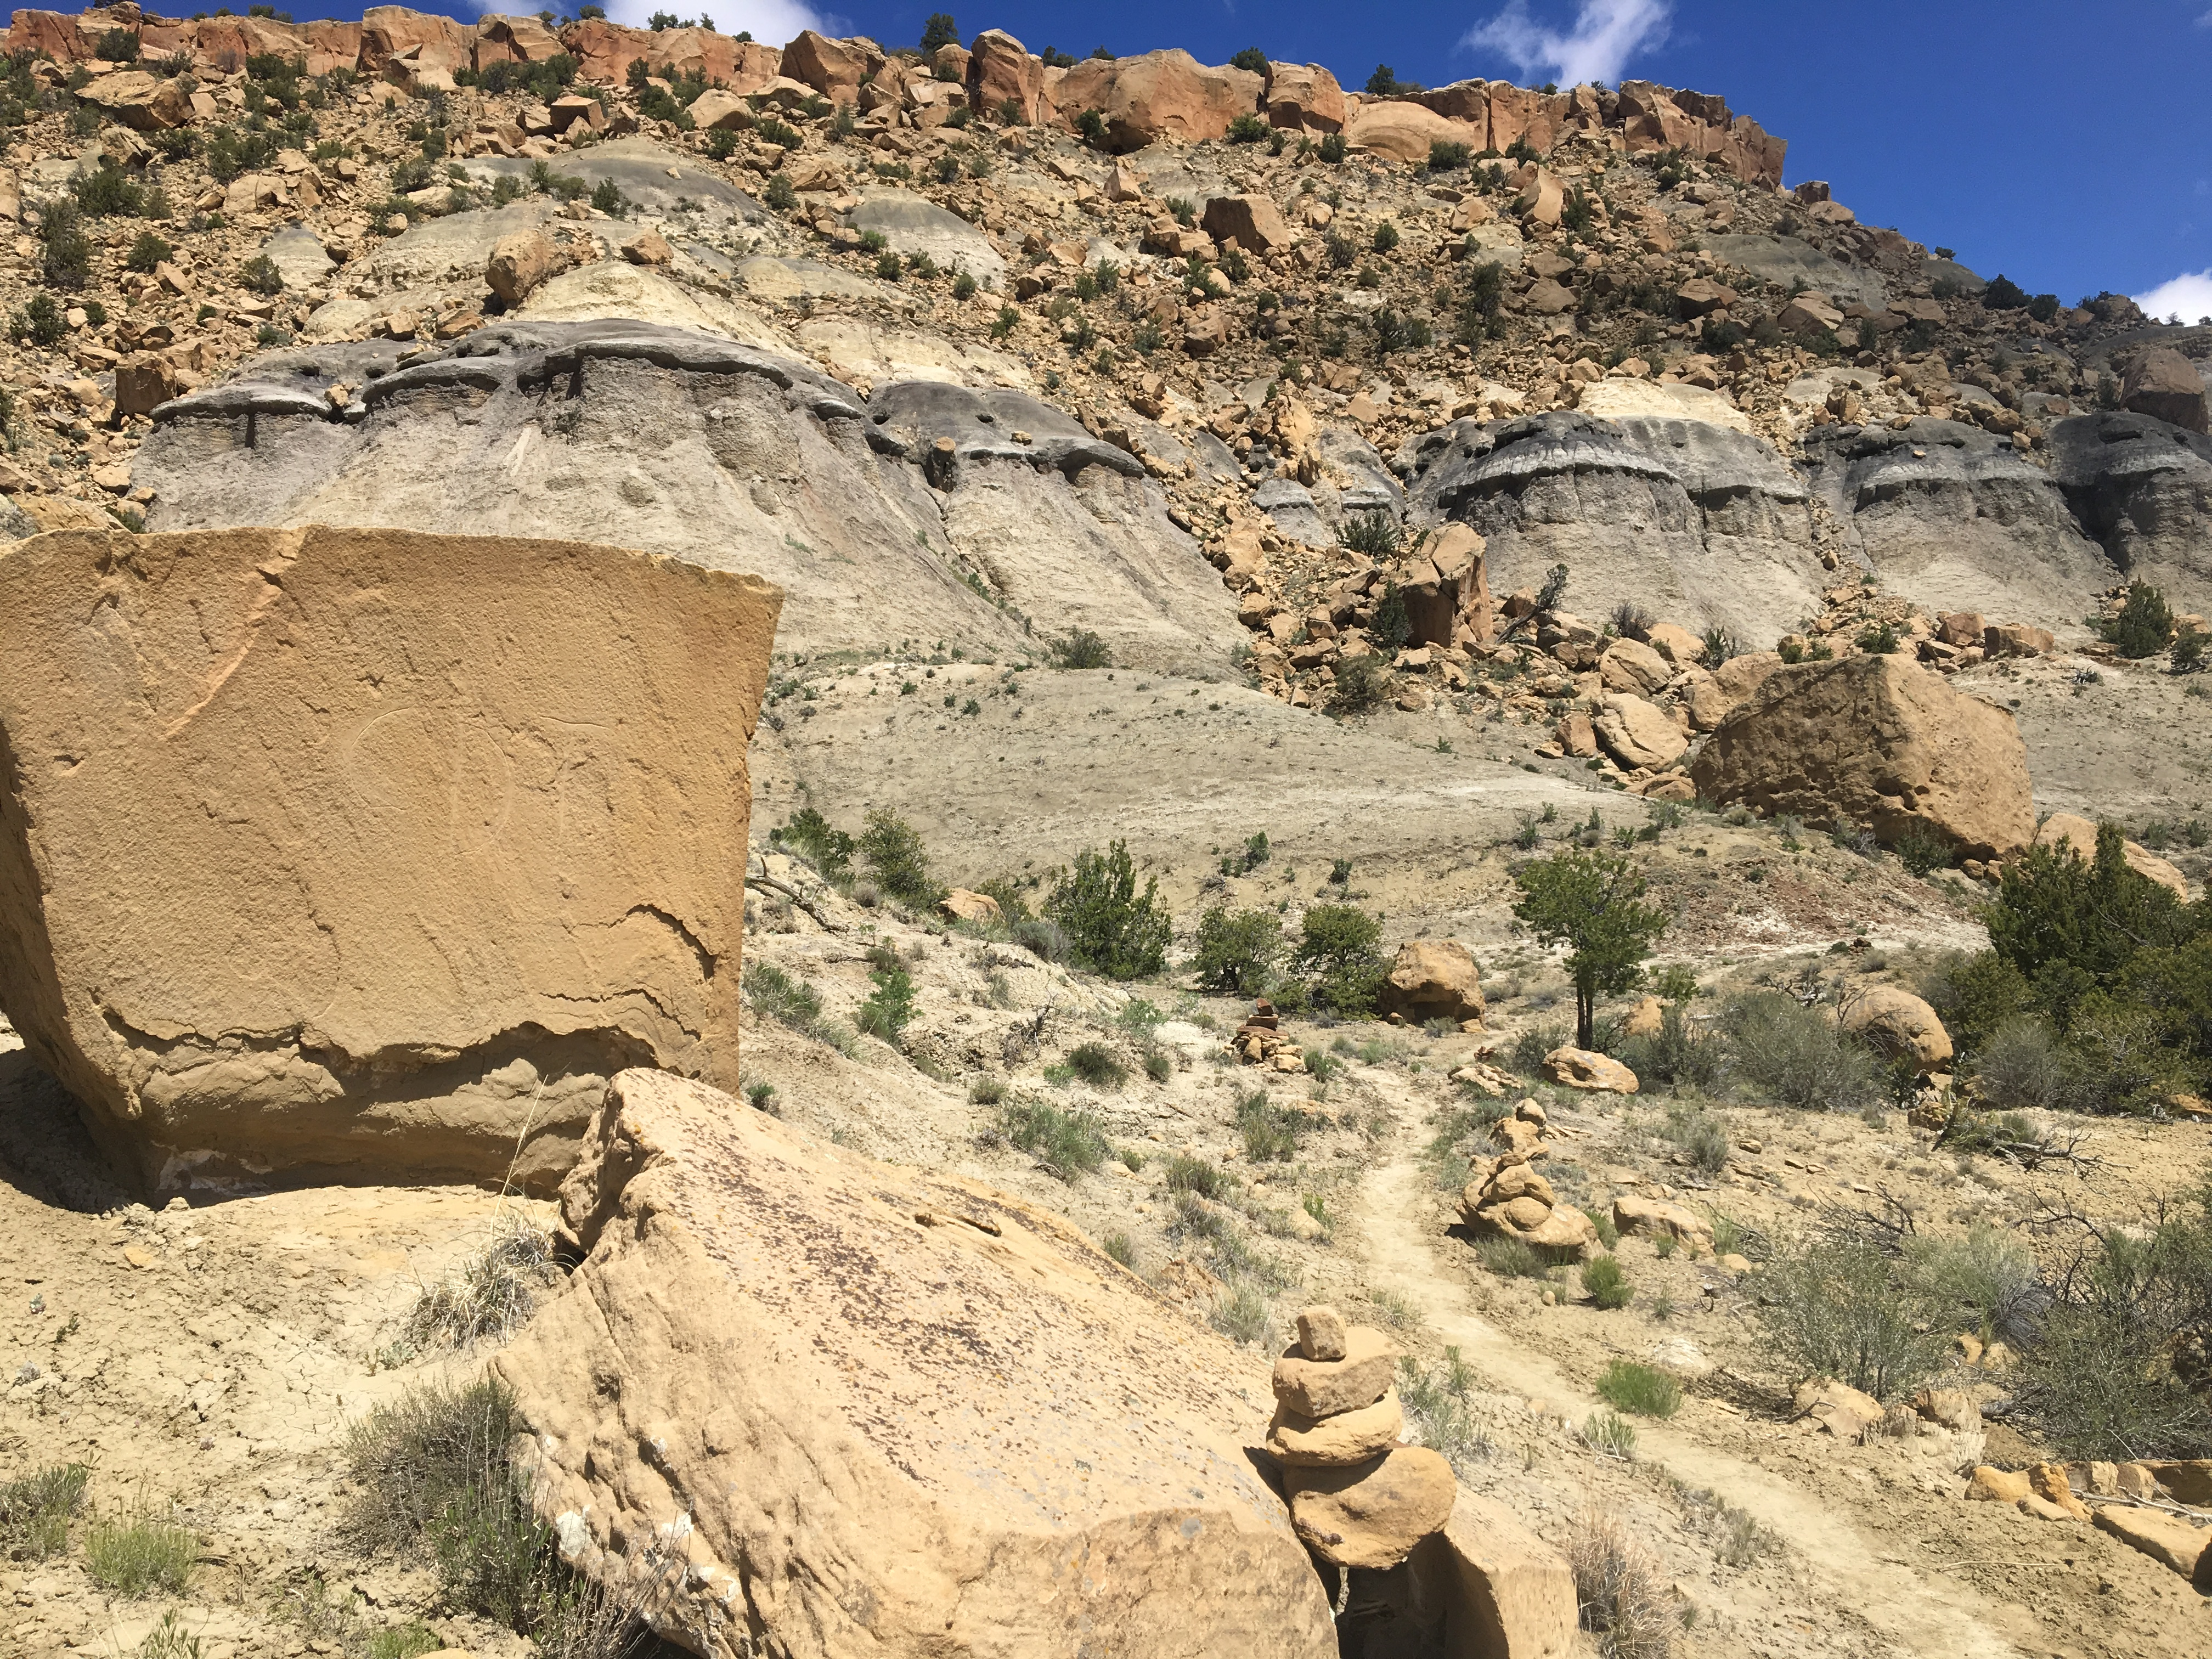 Mesas and Canyons. Getting to Cuba, Not that Cuba - The Trek